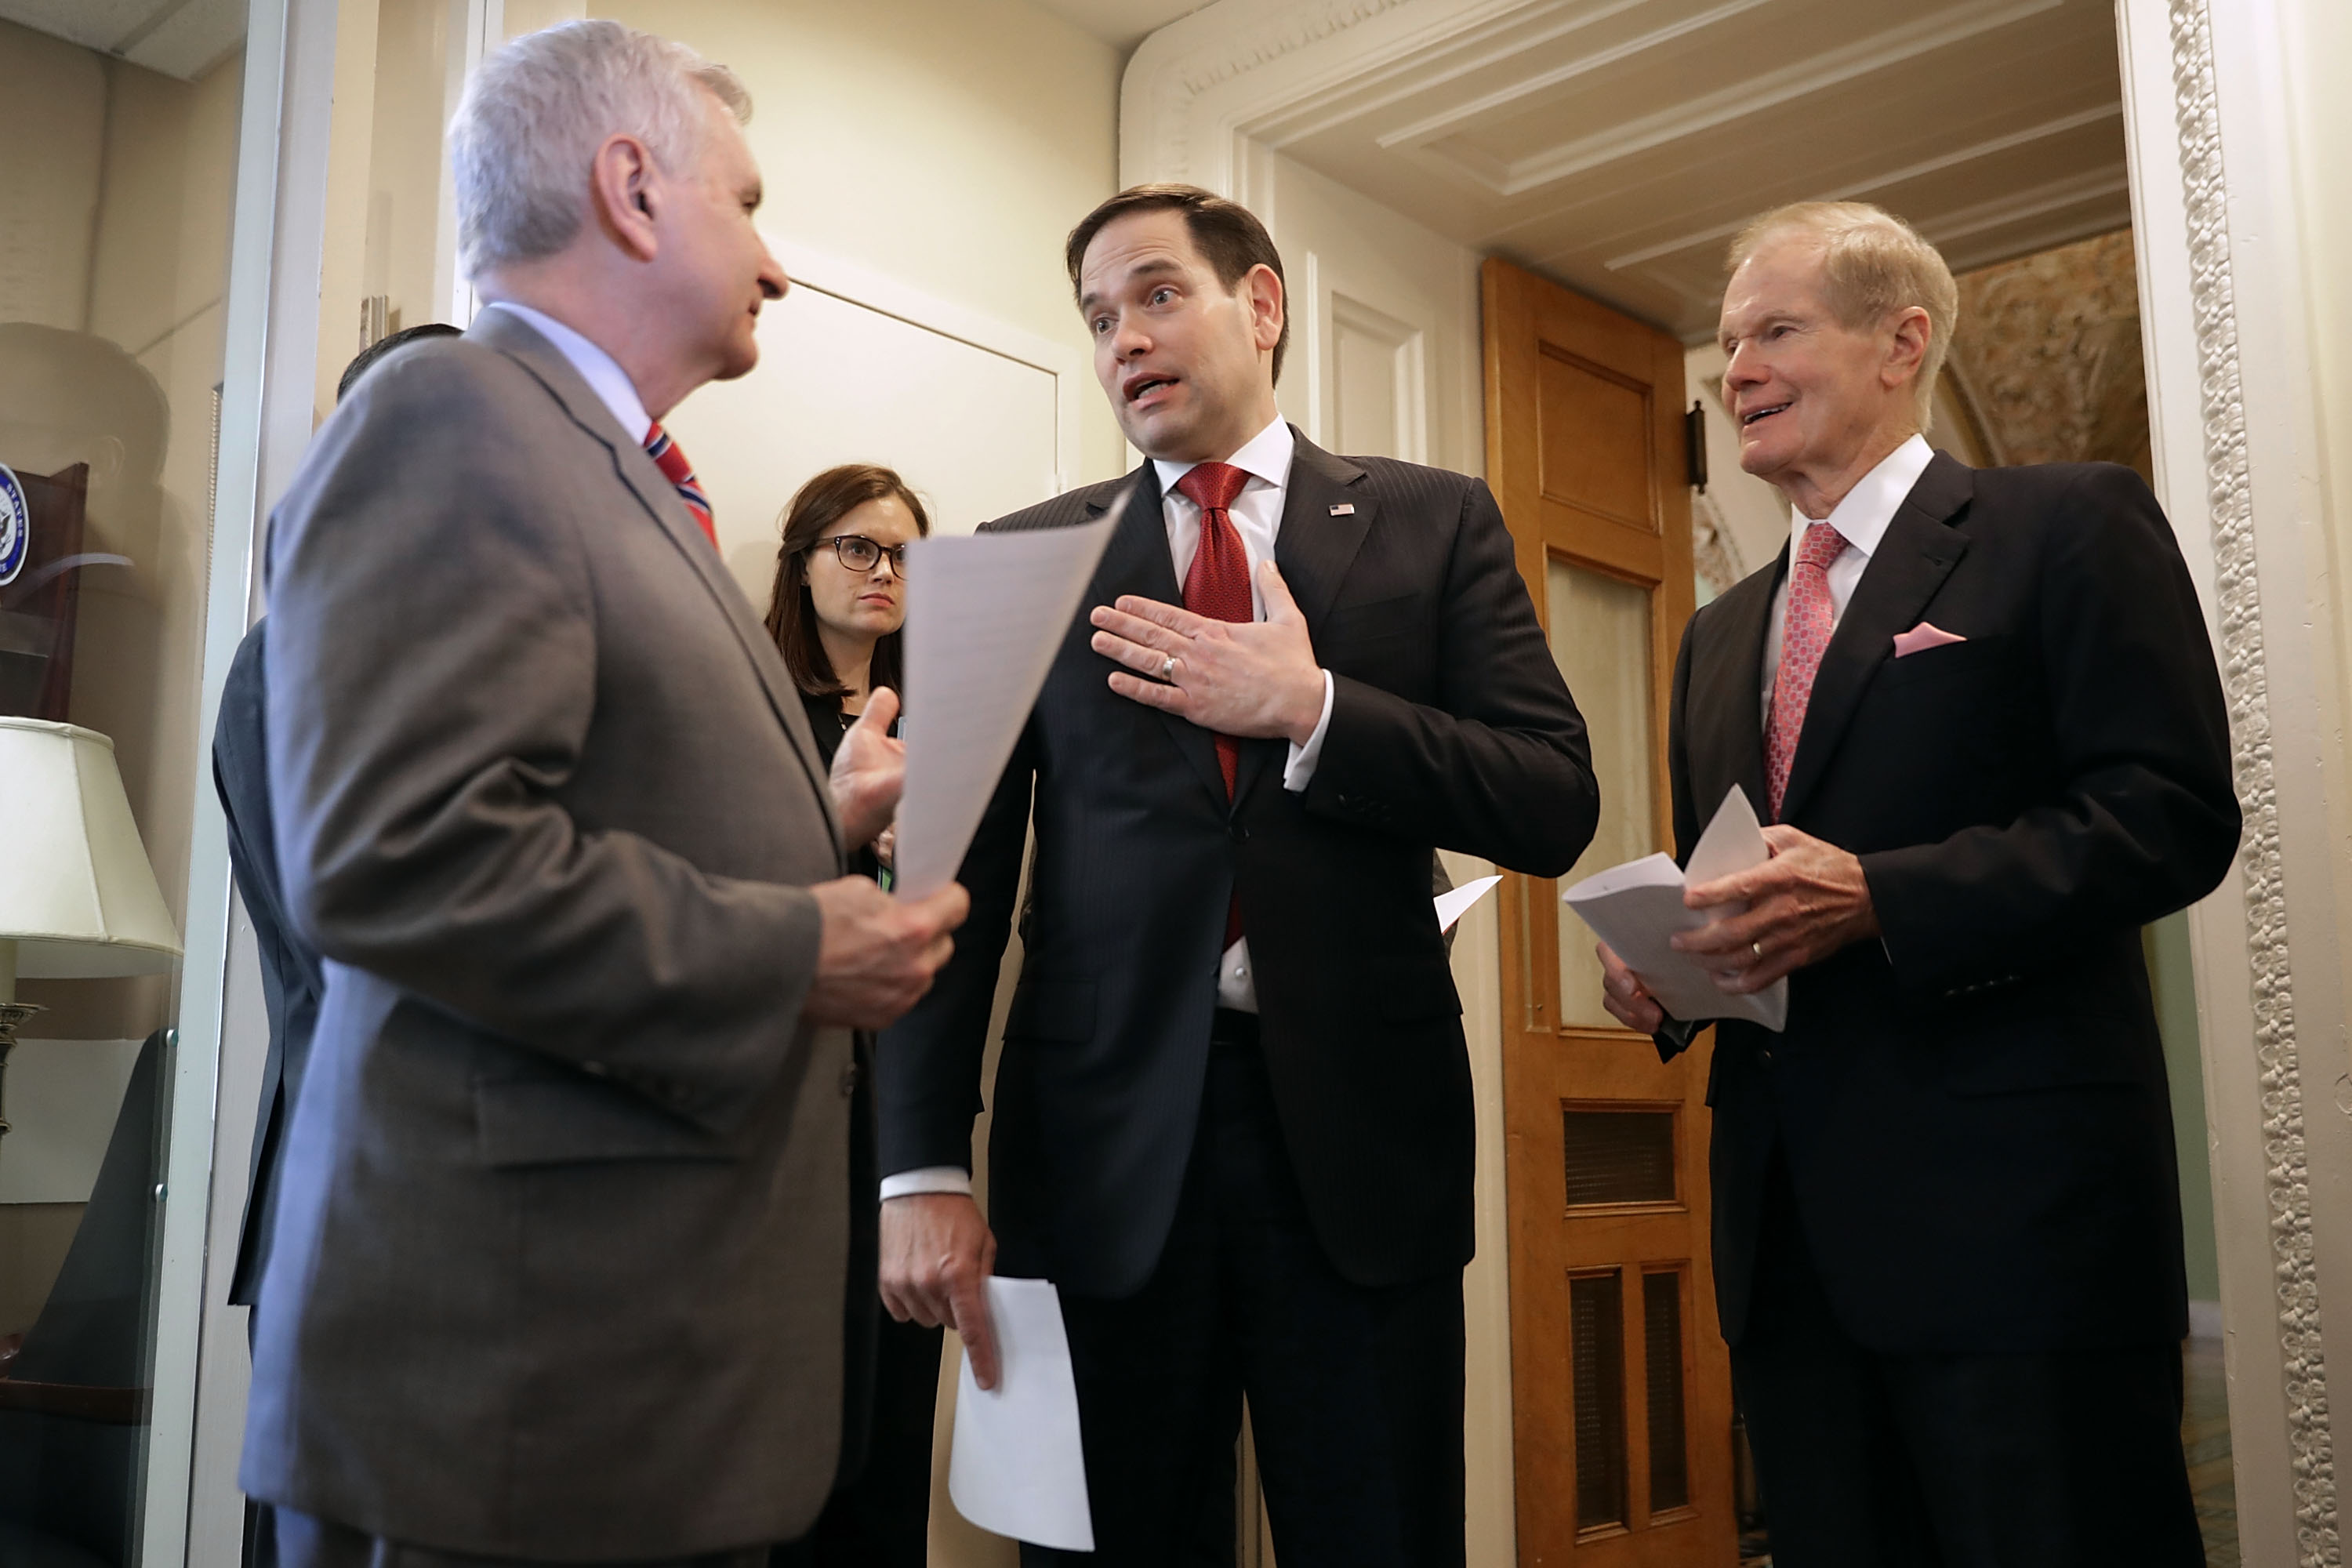 "(L-R) Sen. Jack Reed (D-RI), Sen. Marco Rubio (R-FL) and Sen. Bill Nelson (D-FL) talk about their bipartisan legislation to create ""red flag"" gun laws before a news conference at the U.S. Capitol March 22, 2018 in Washington, DC. The law would give federal support so states can establish programs to address Òred flags,"" extreme risk protection orders against people who have become a danger to themselves or others. (Photo by Chip Somodevilla/Getty Images)"